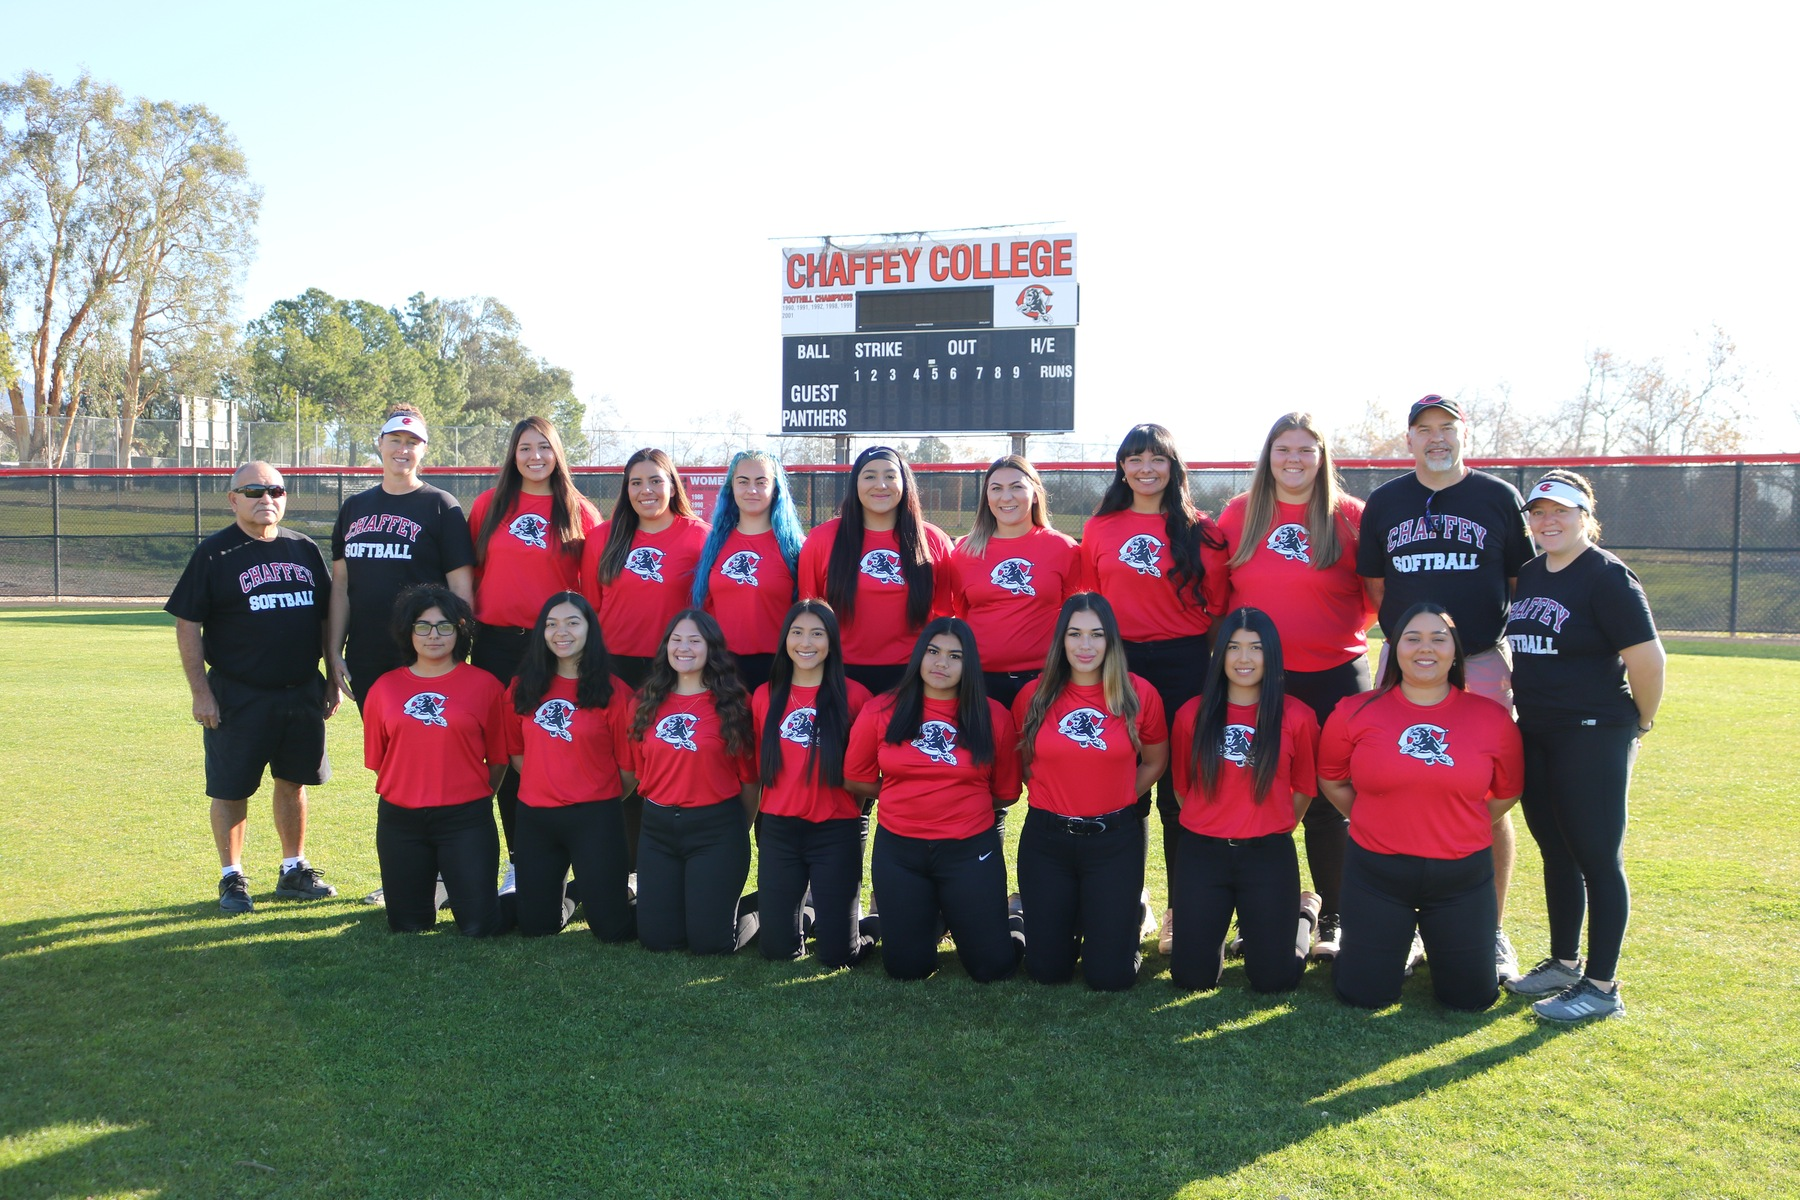 2020 SOFTBALL TEAM